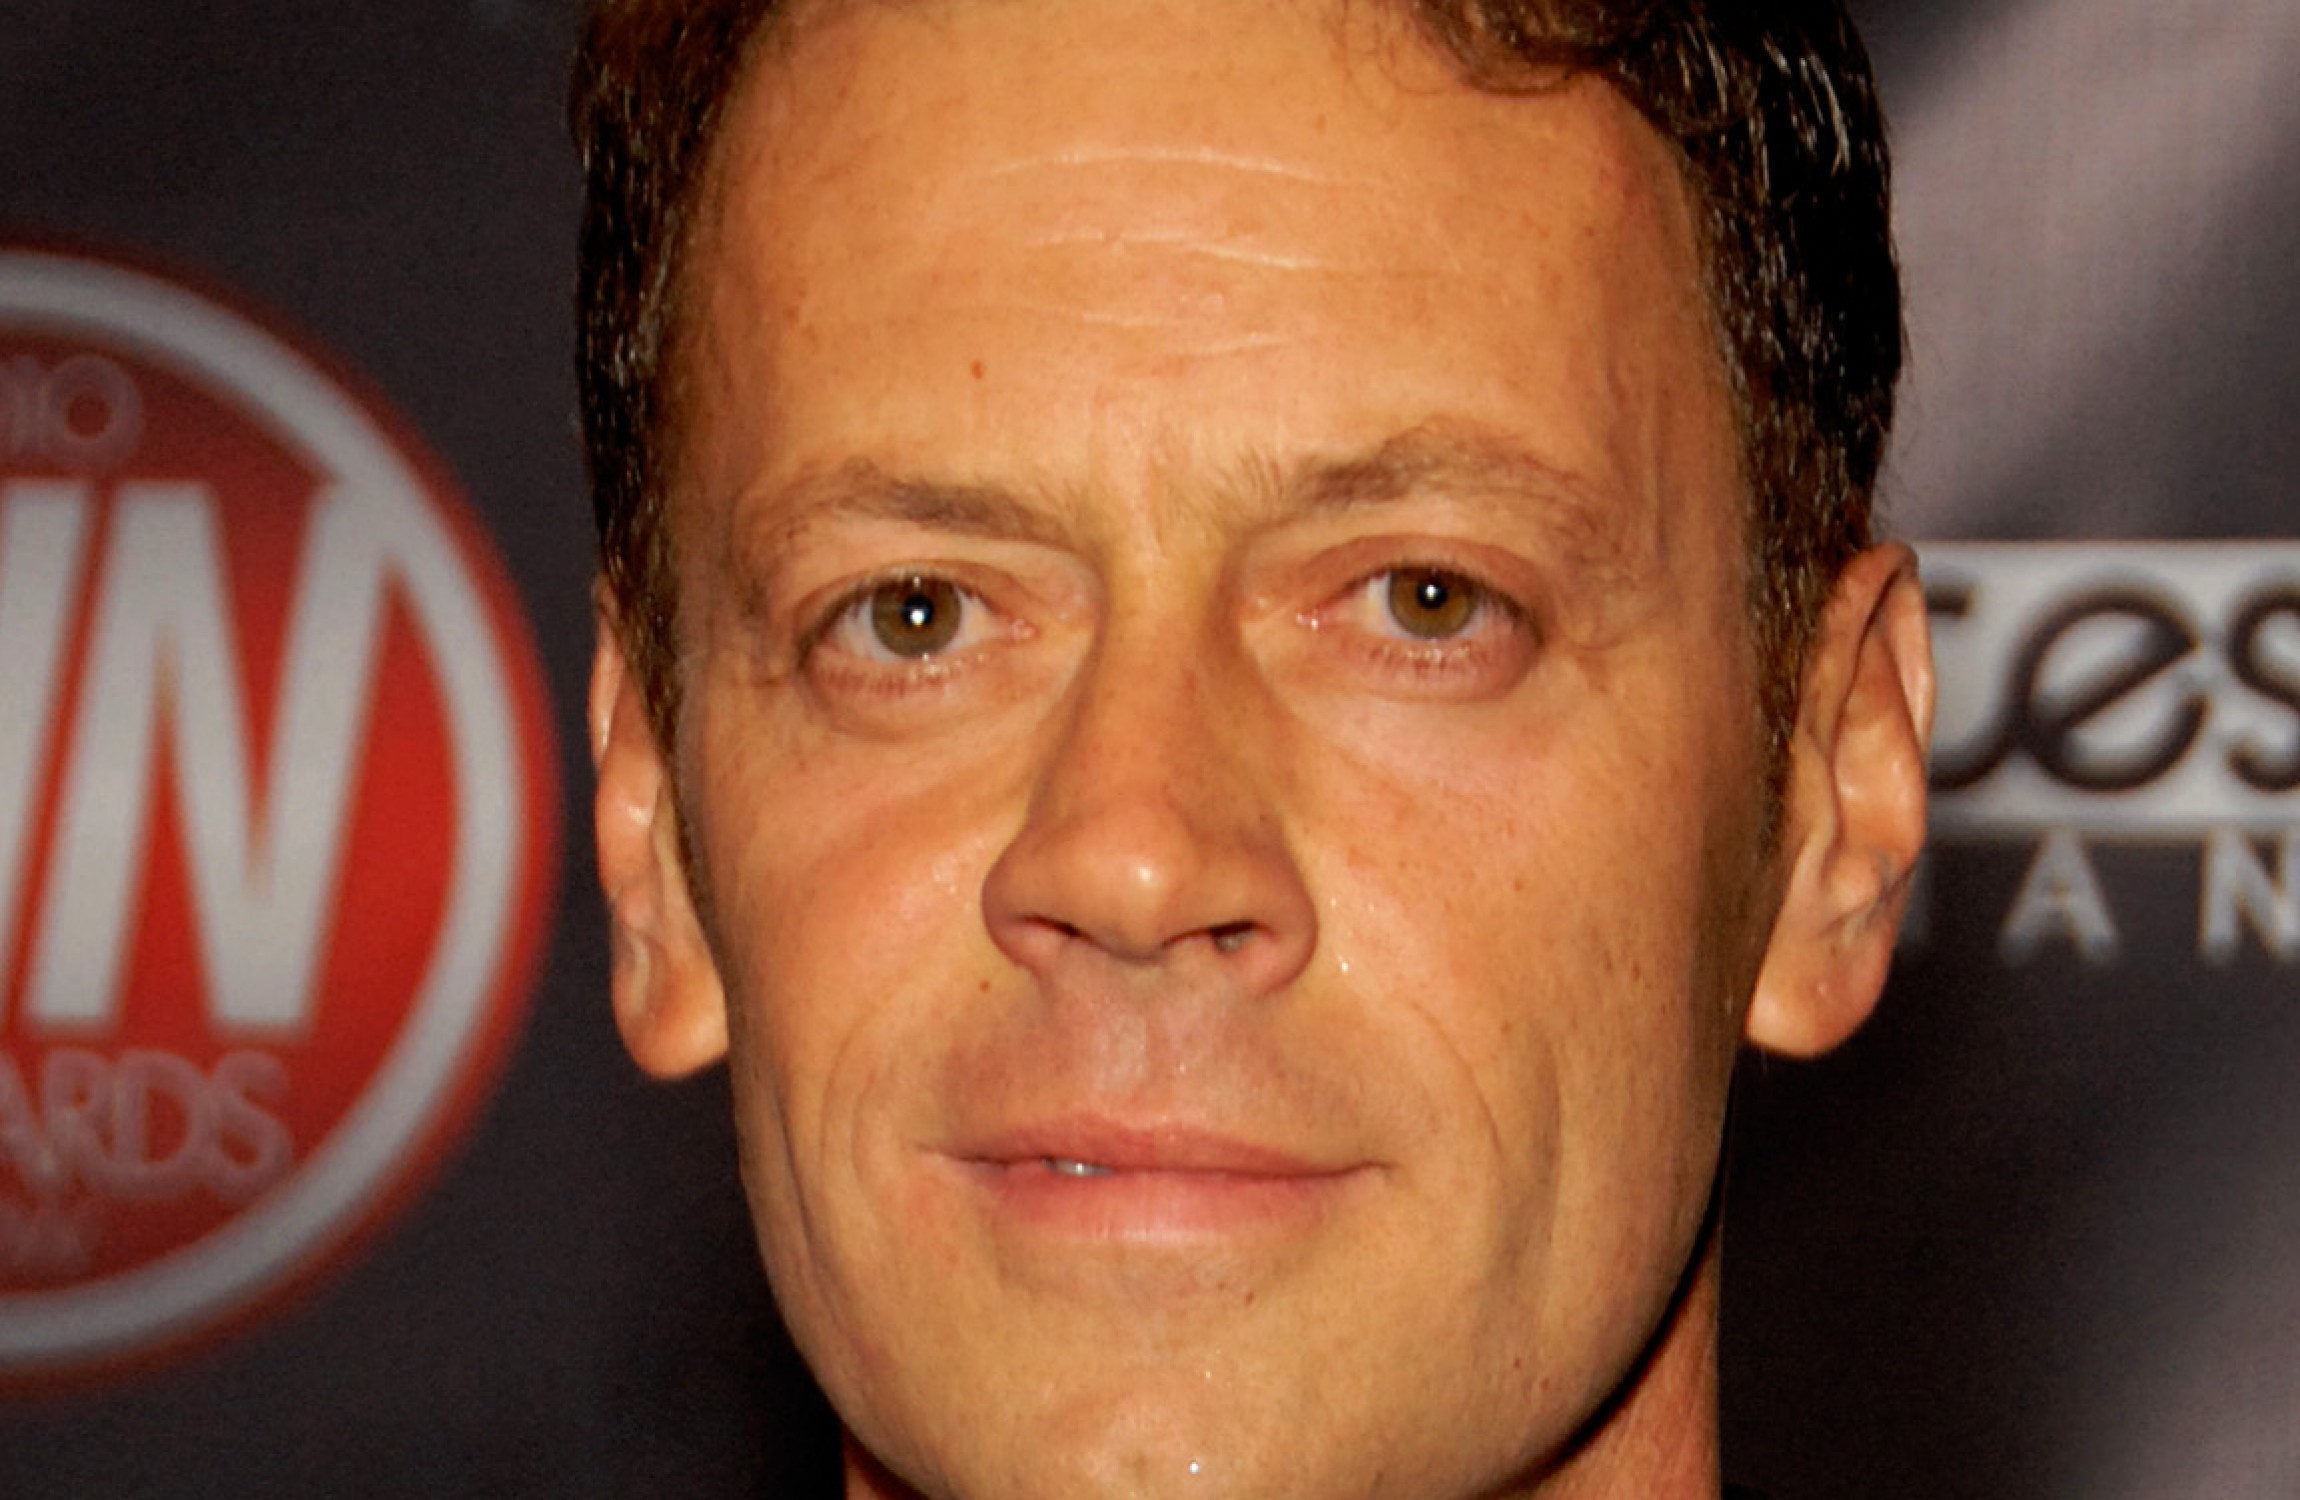 Rocco Siffredi: This Italian Porn Star Has Offered To Teach Sex Education